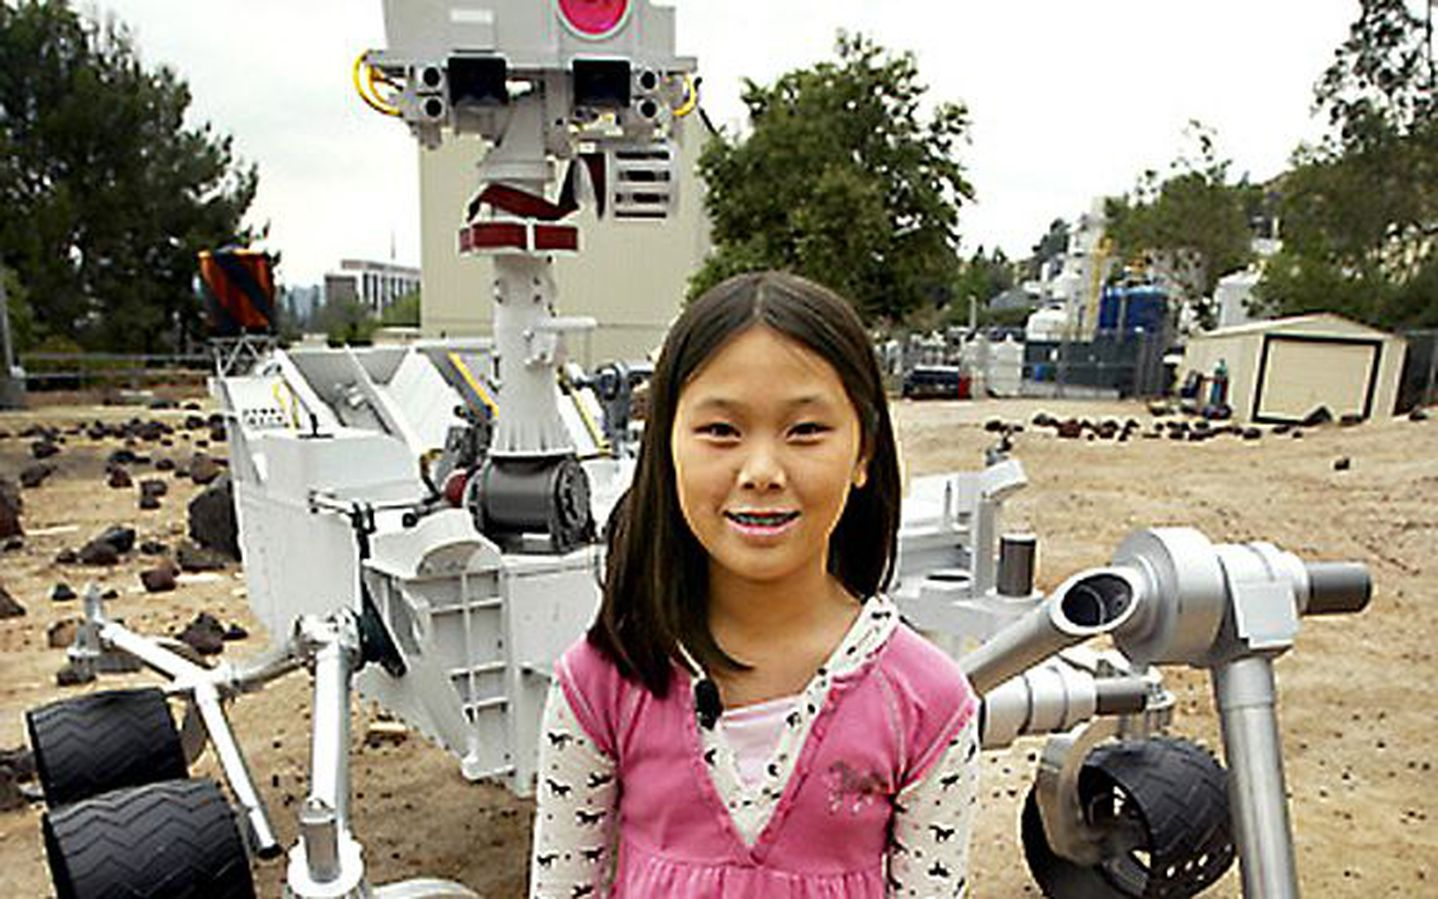 At Age 11 This Girl Named The Curiosity Rover